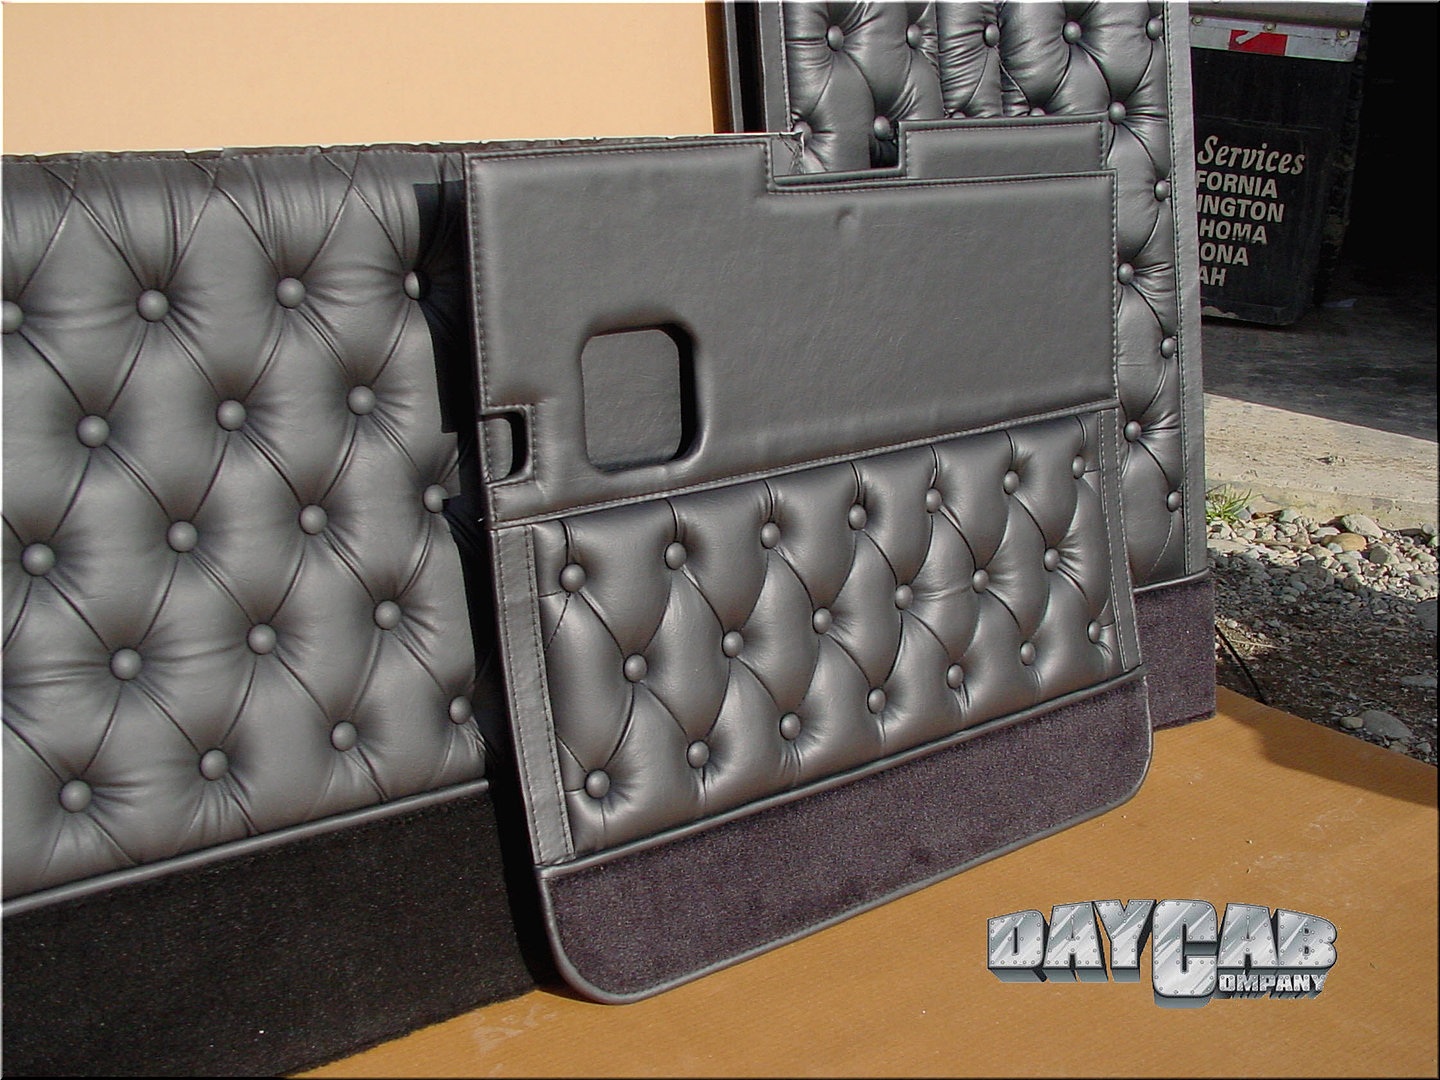 daycab company custom builds day cab conversion kits and upholstery kenworth interior vit gray